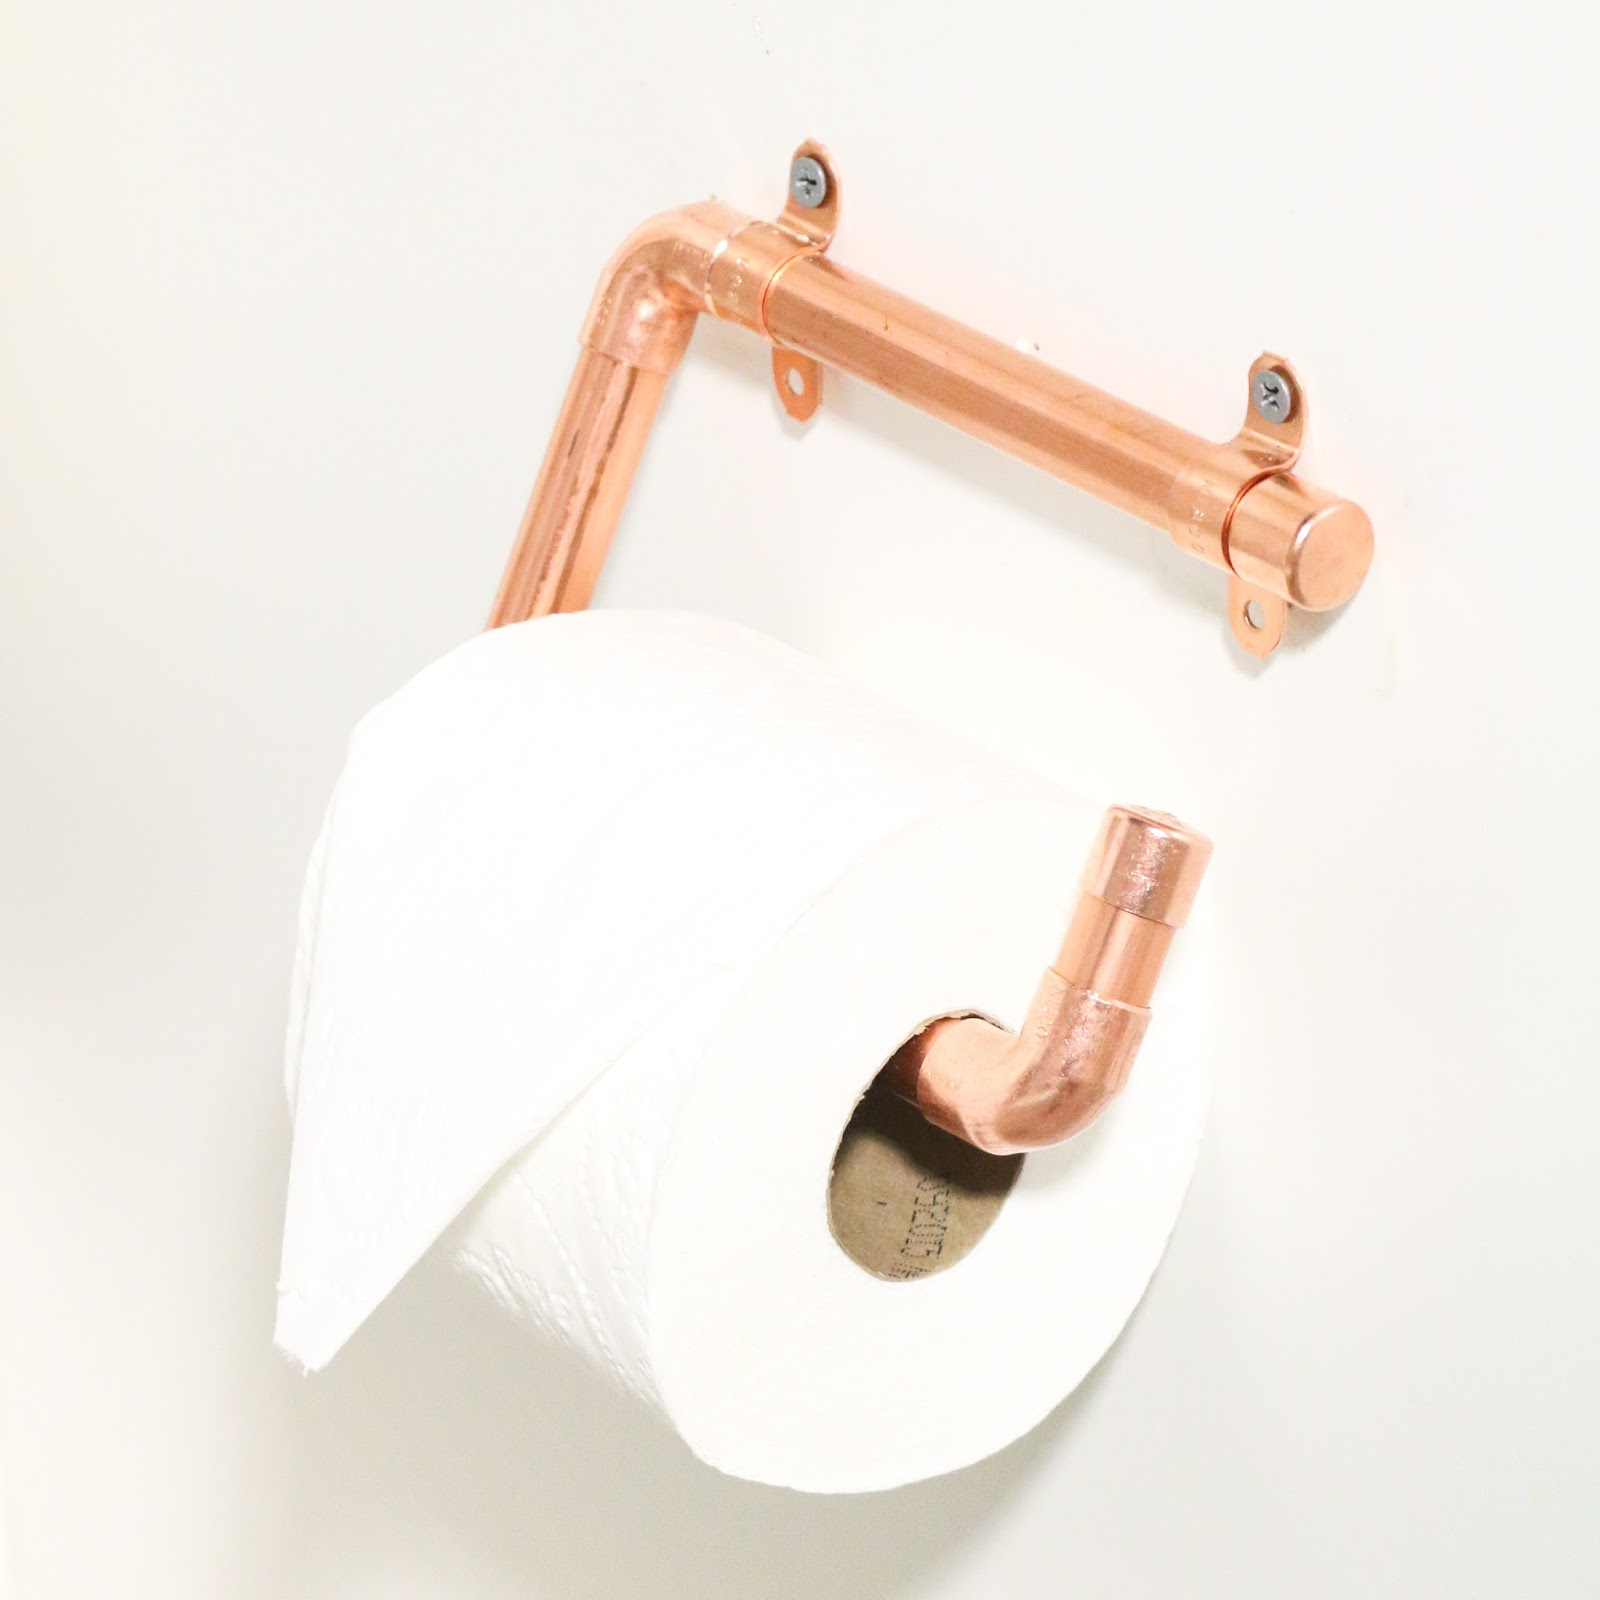 Diy it copper toilet paper holders a kailo chic life for Copper pipe projects